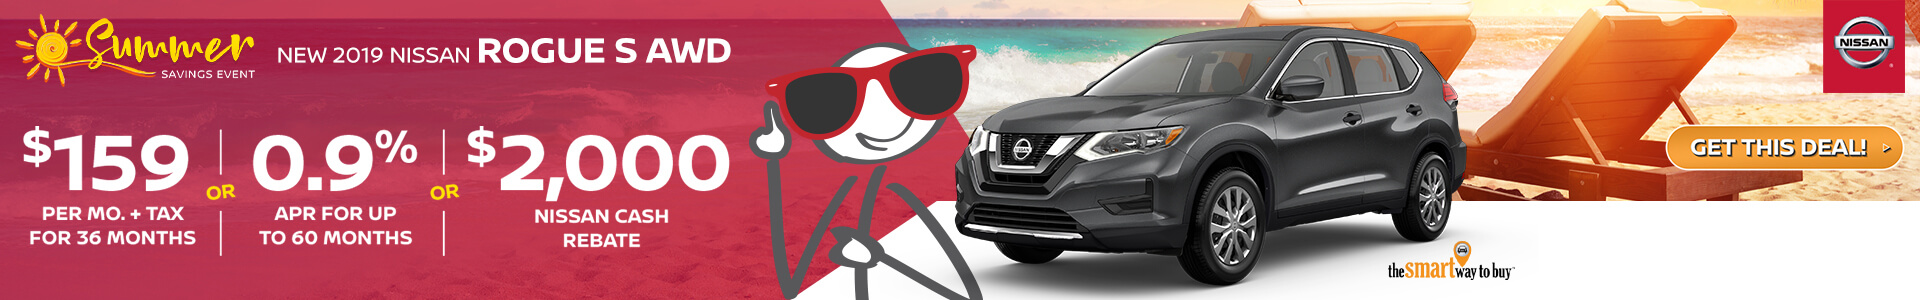 2019 Nissan Rogue Lease for $159